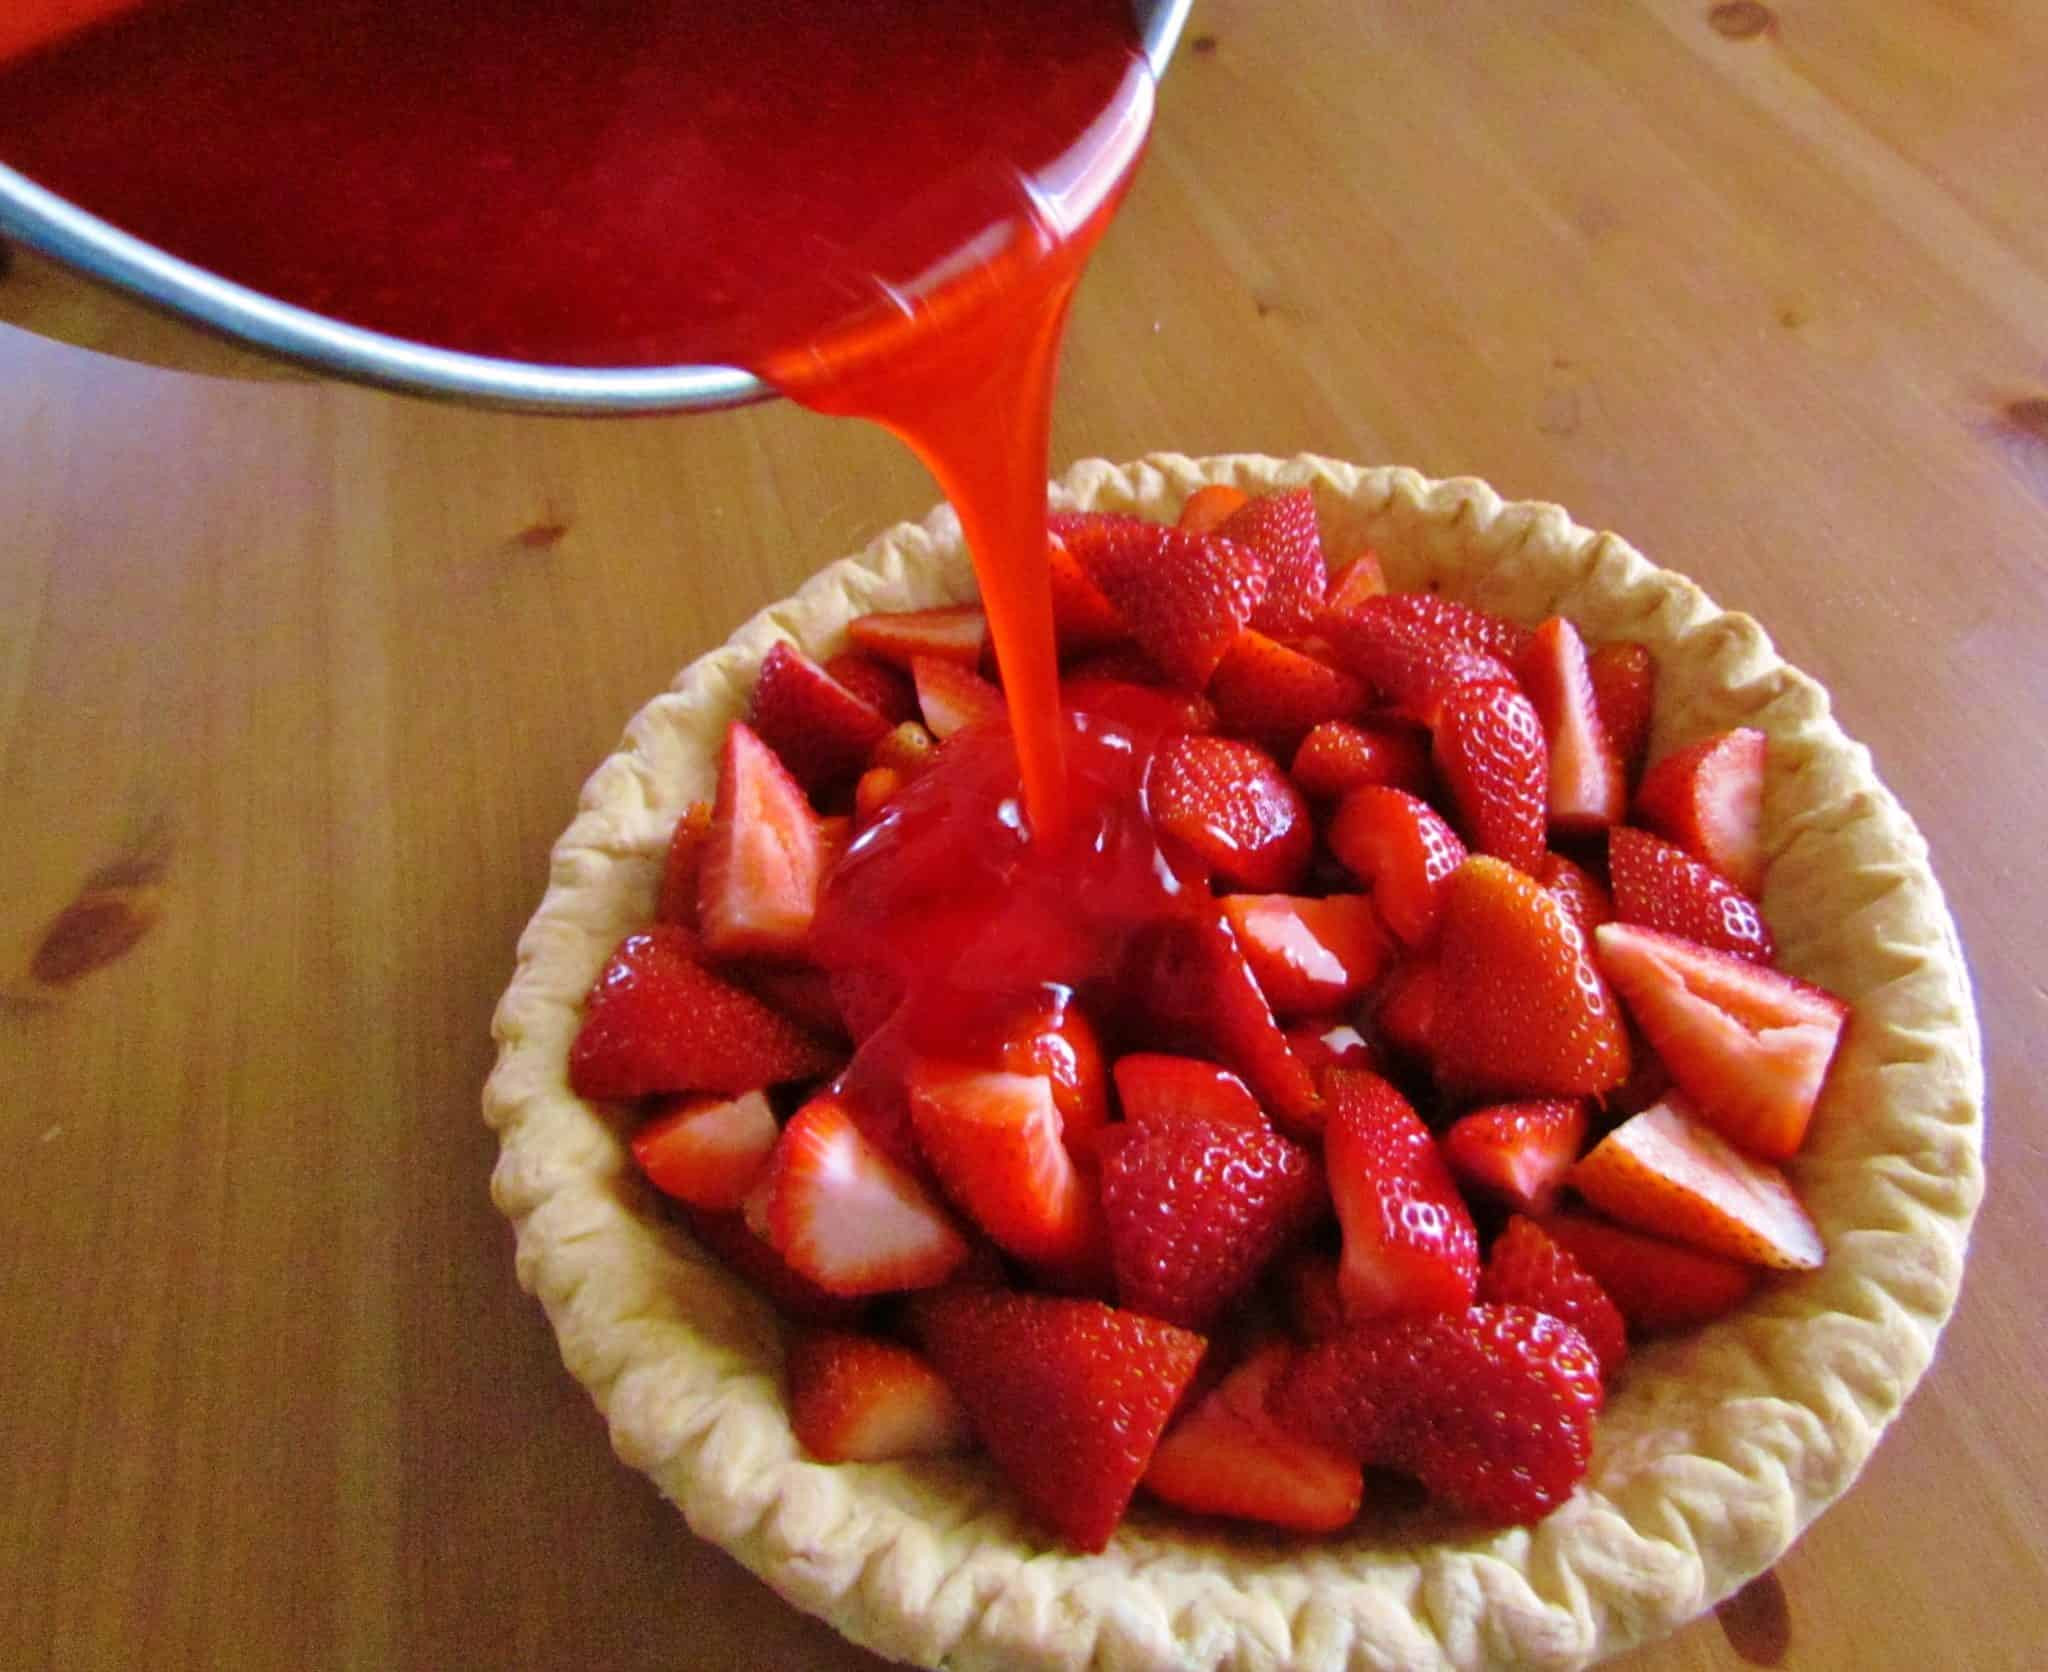 Strawberry Pie Recipes  strawberry pie with 7up and jello